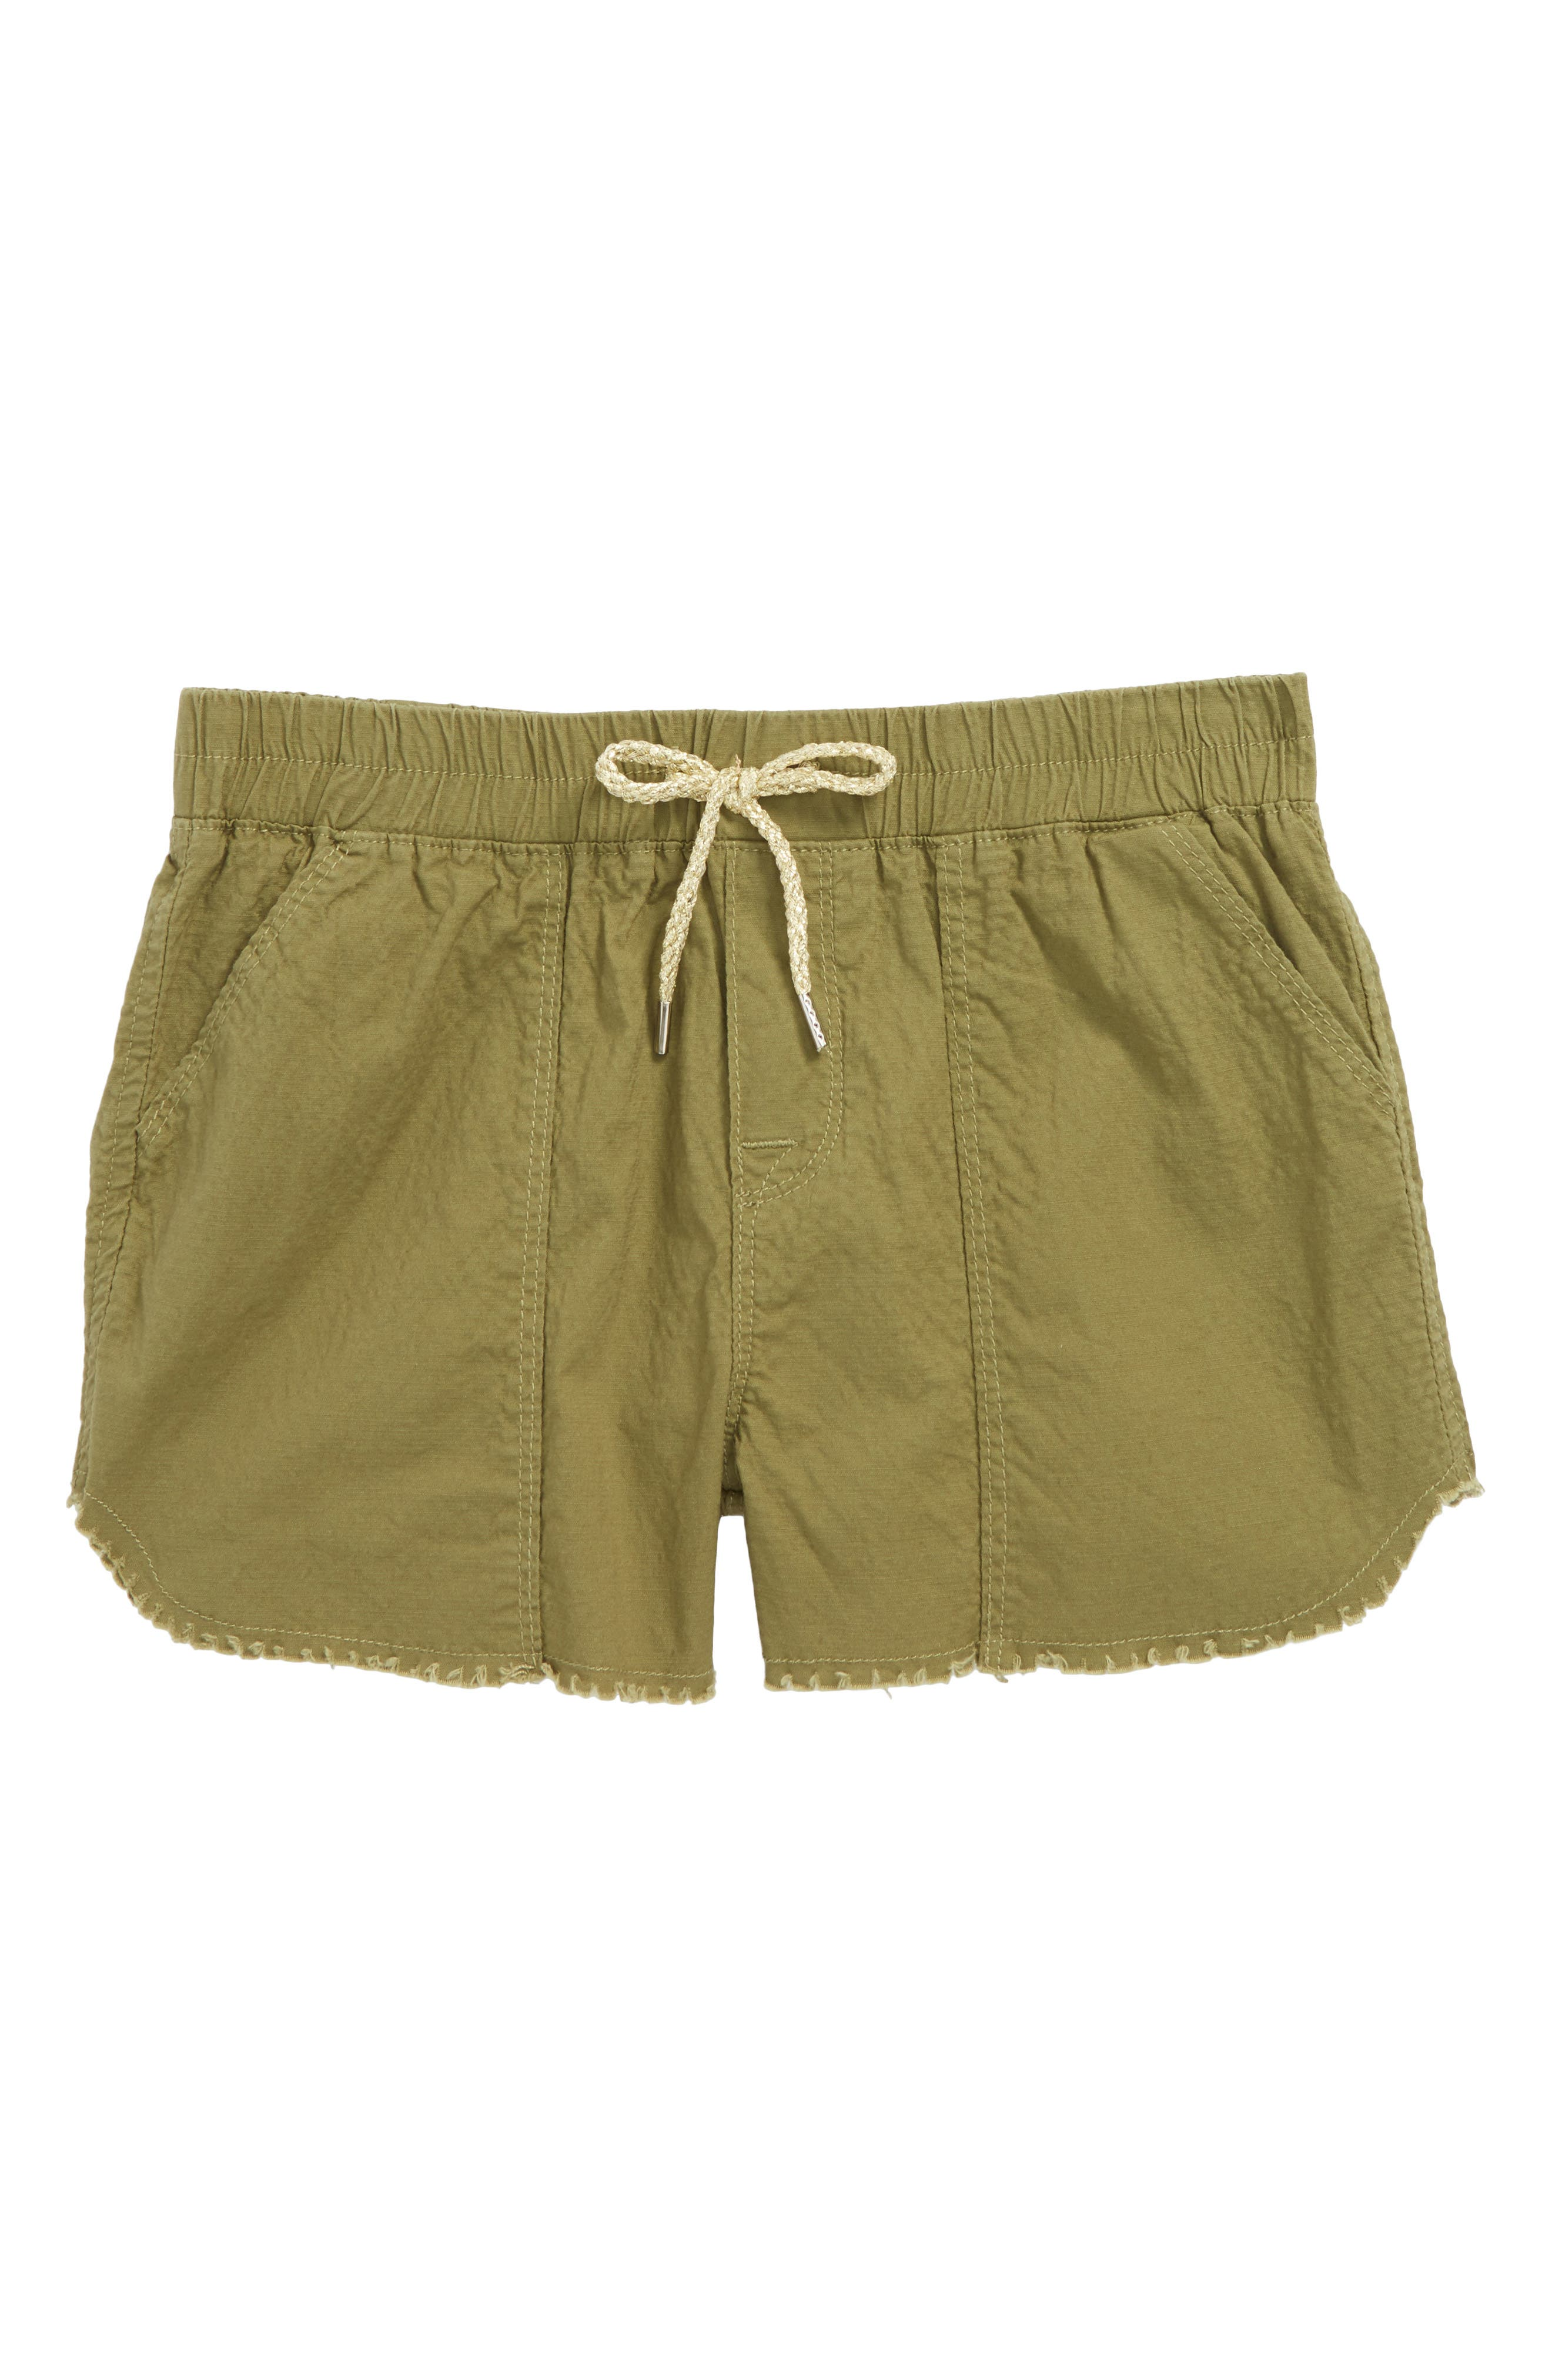 Surplus Chambray Shorts,                             Main thumbnail 1, color,                             Faded Olive